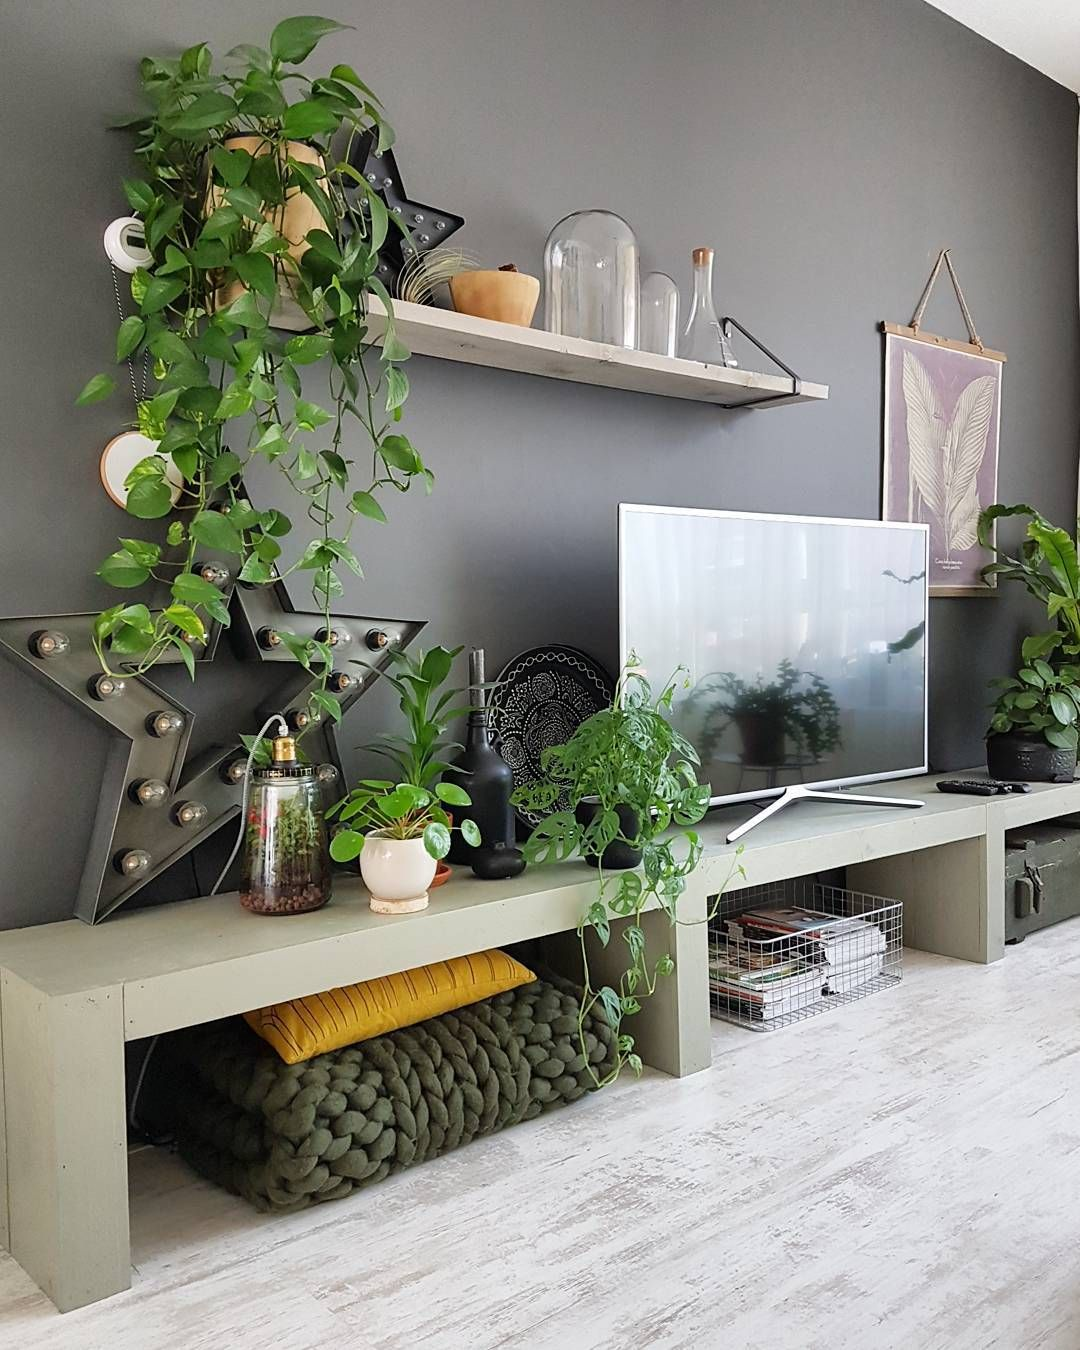 Living Area Cabinet Design: TV Cabinet And Indoor Plants